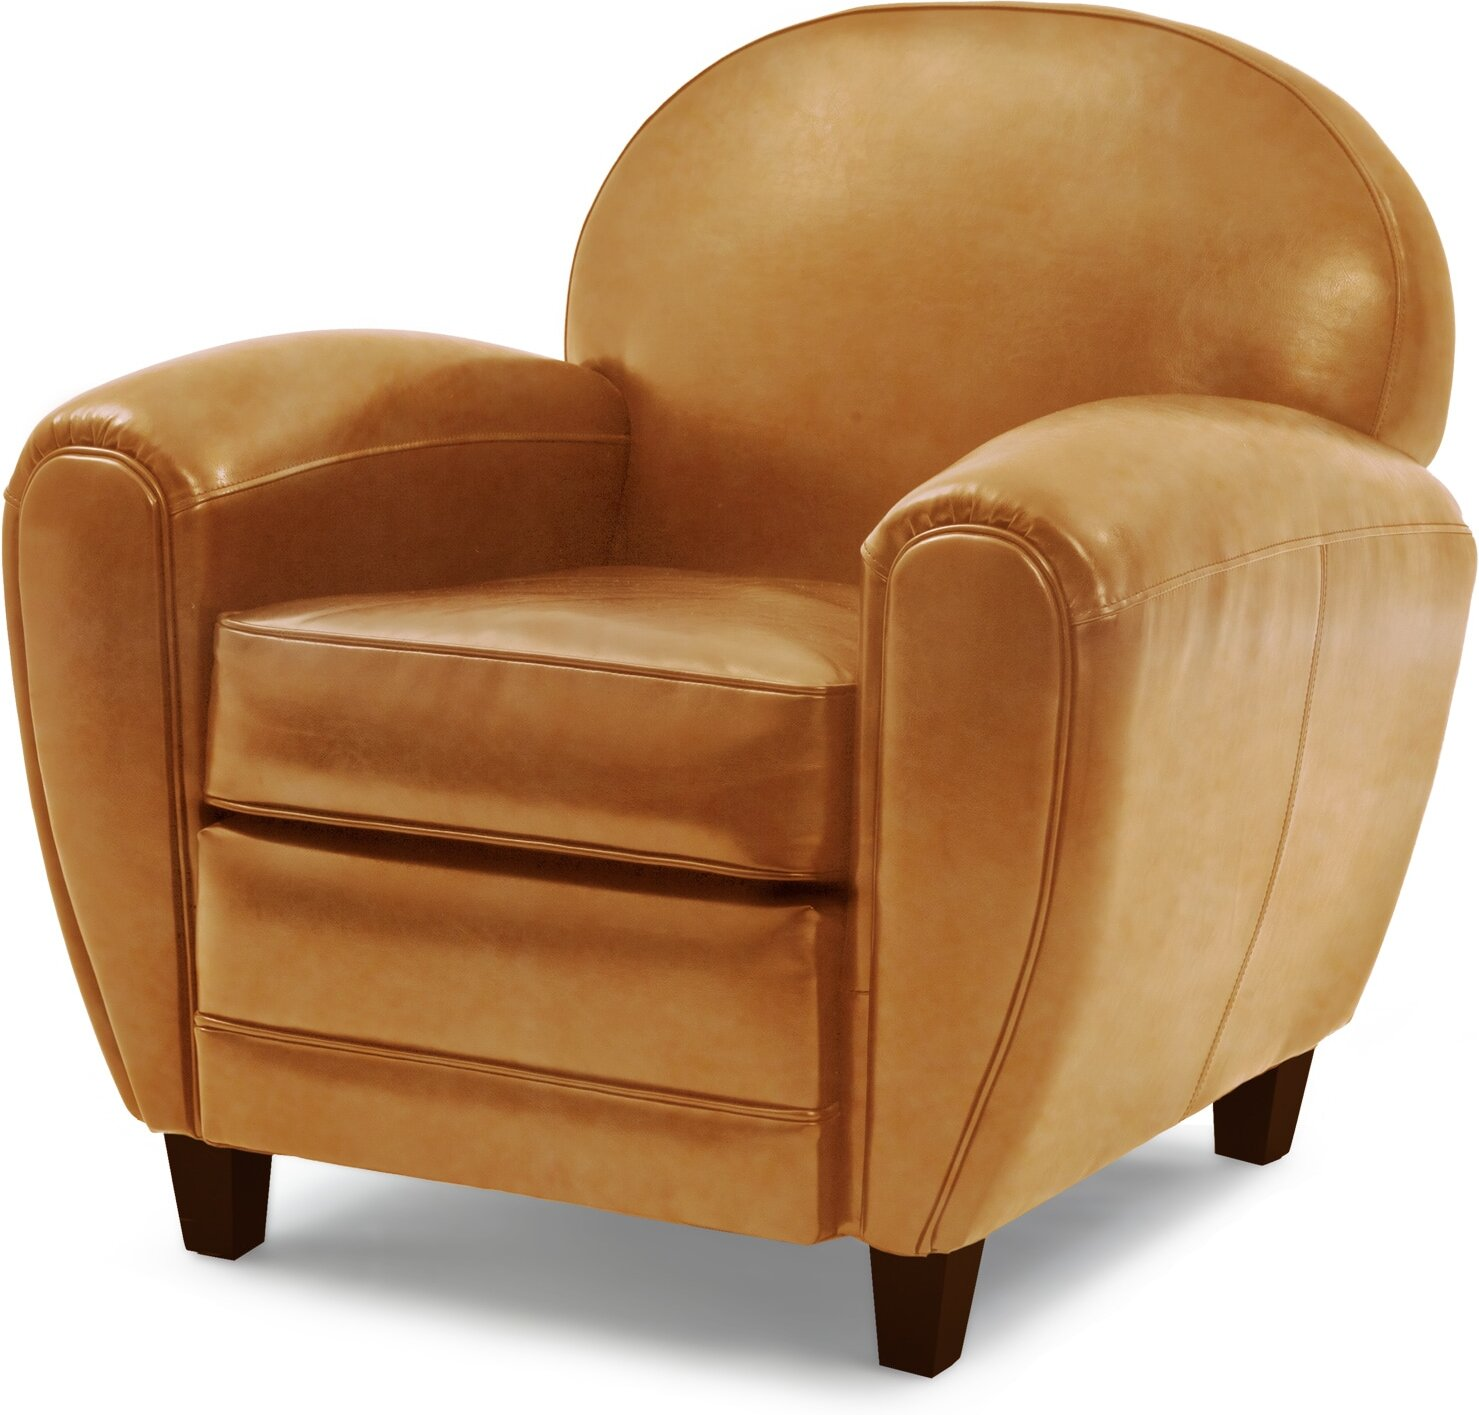 Buy cheap Club chair pare products prices for best UK